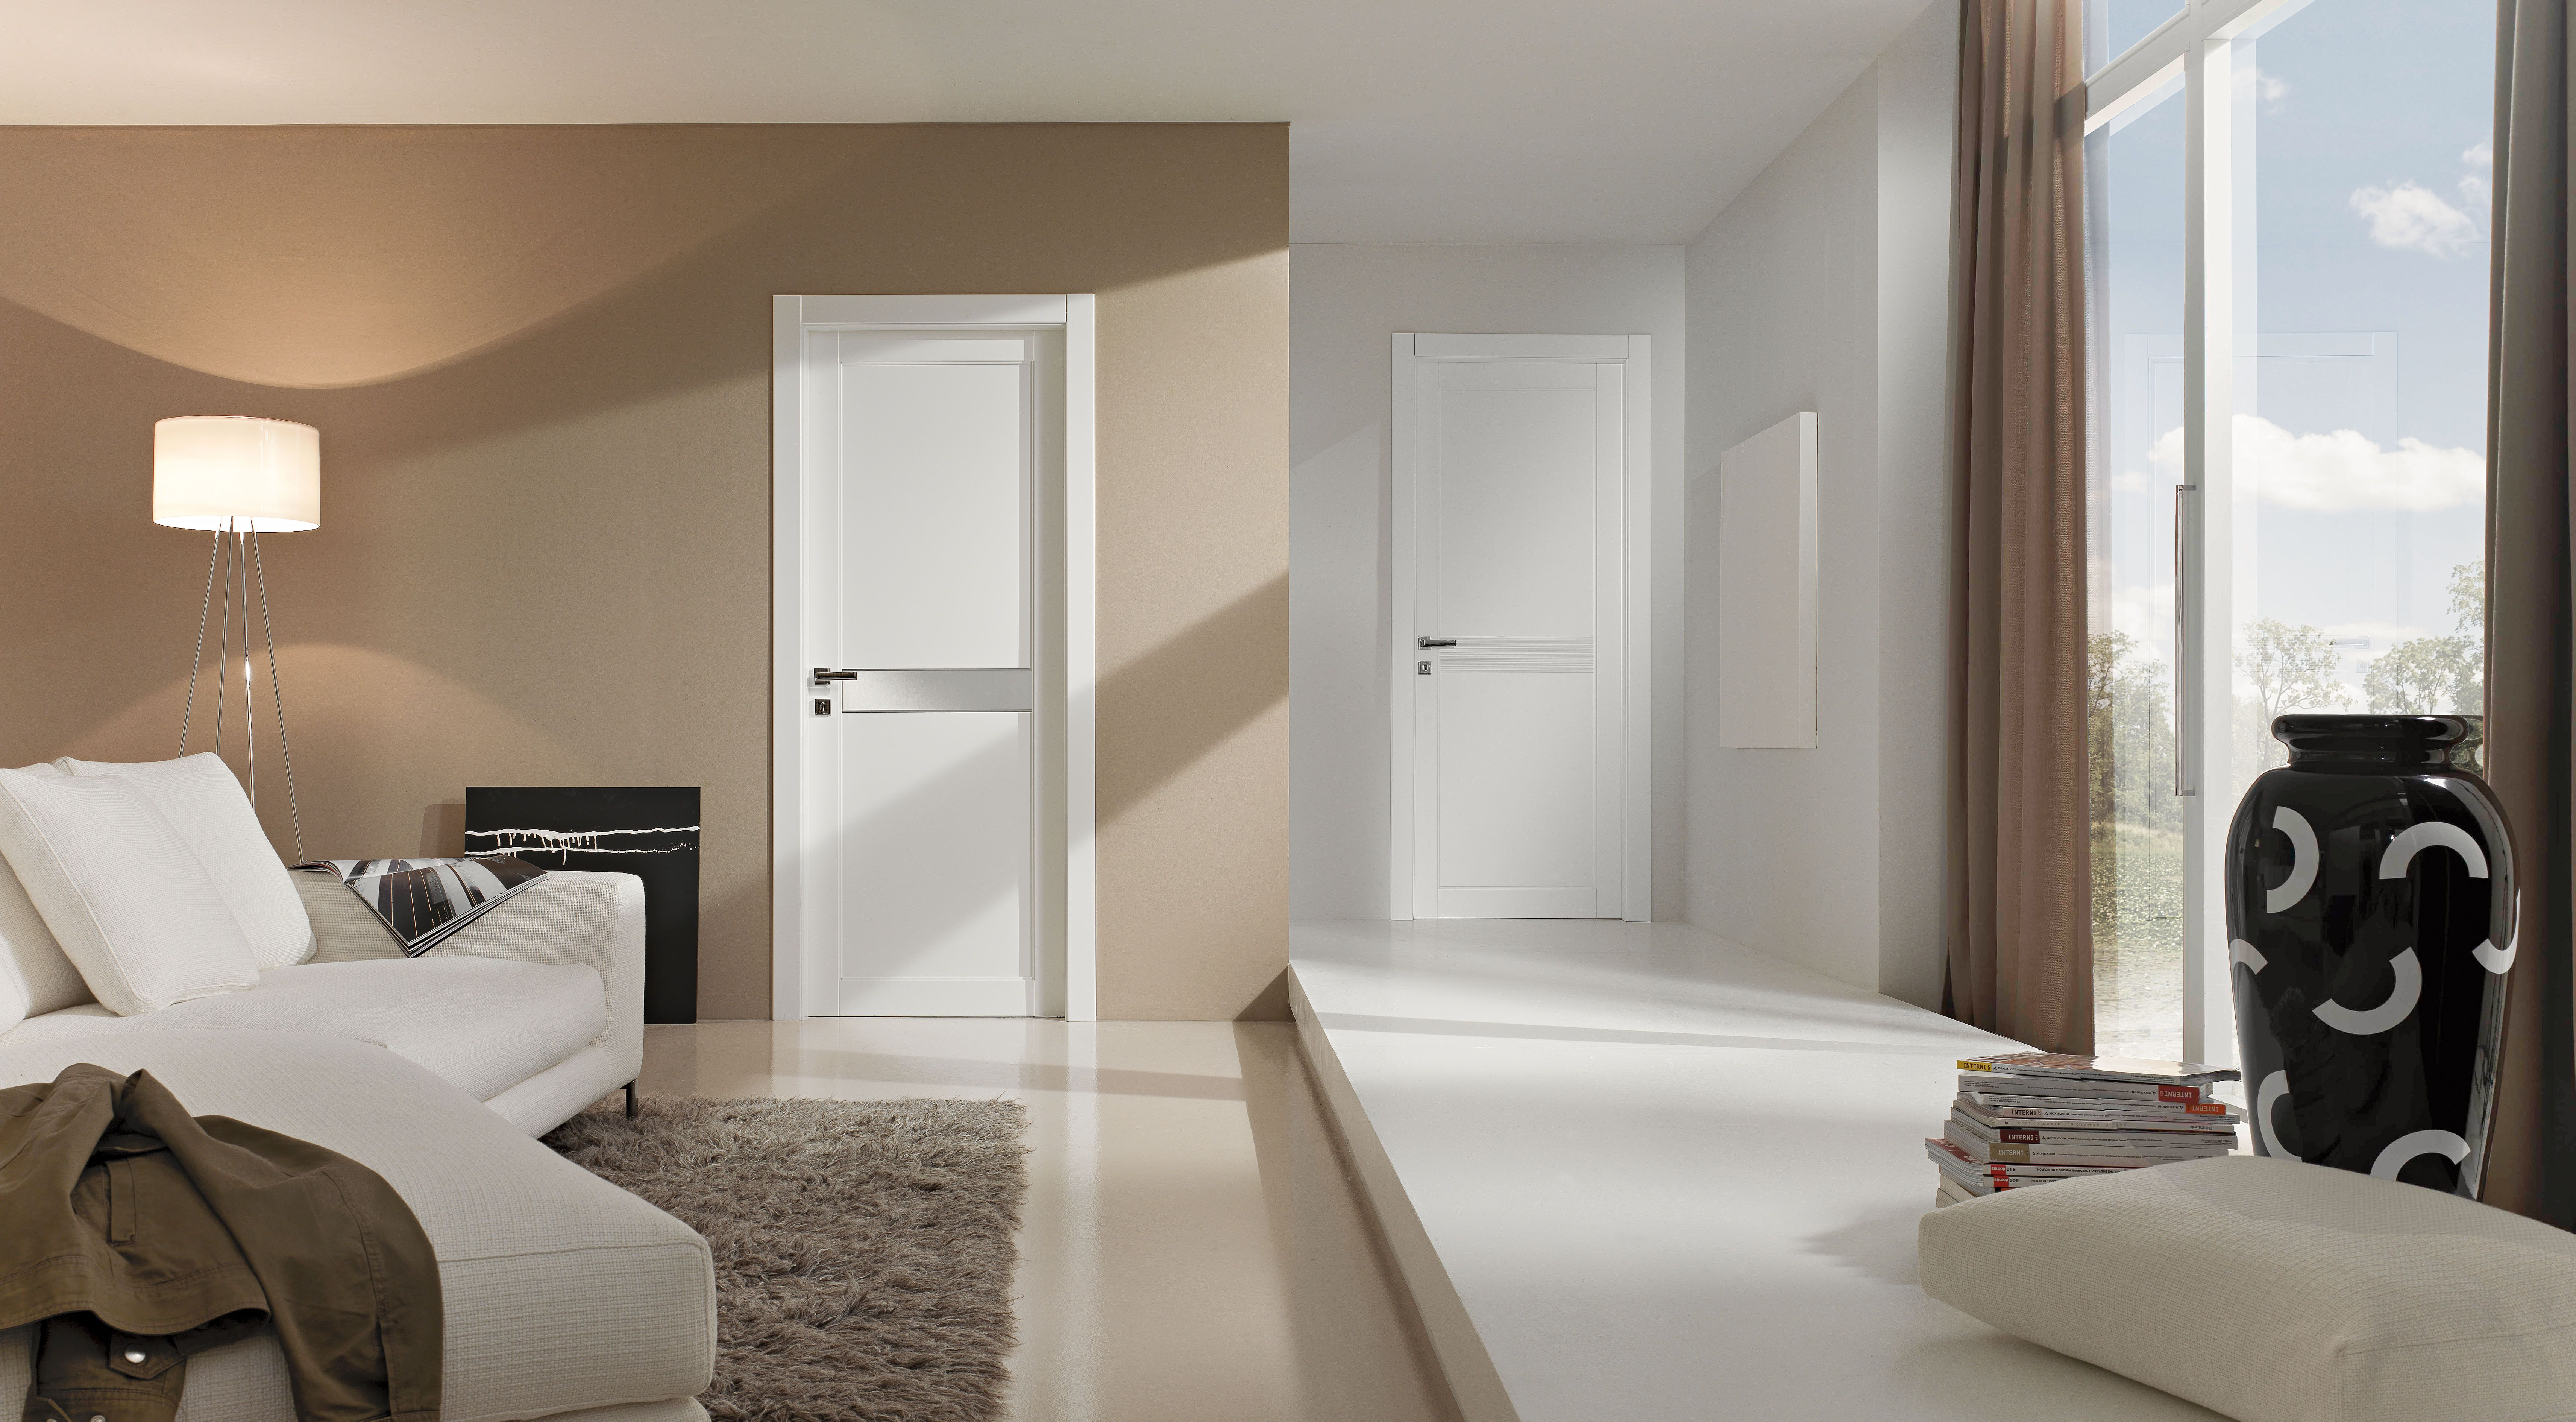 gavisio collection interior doors (italy) - see more stunning